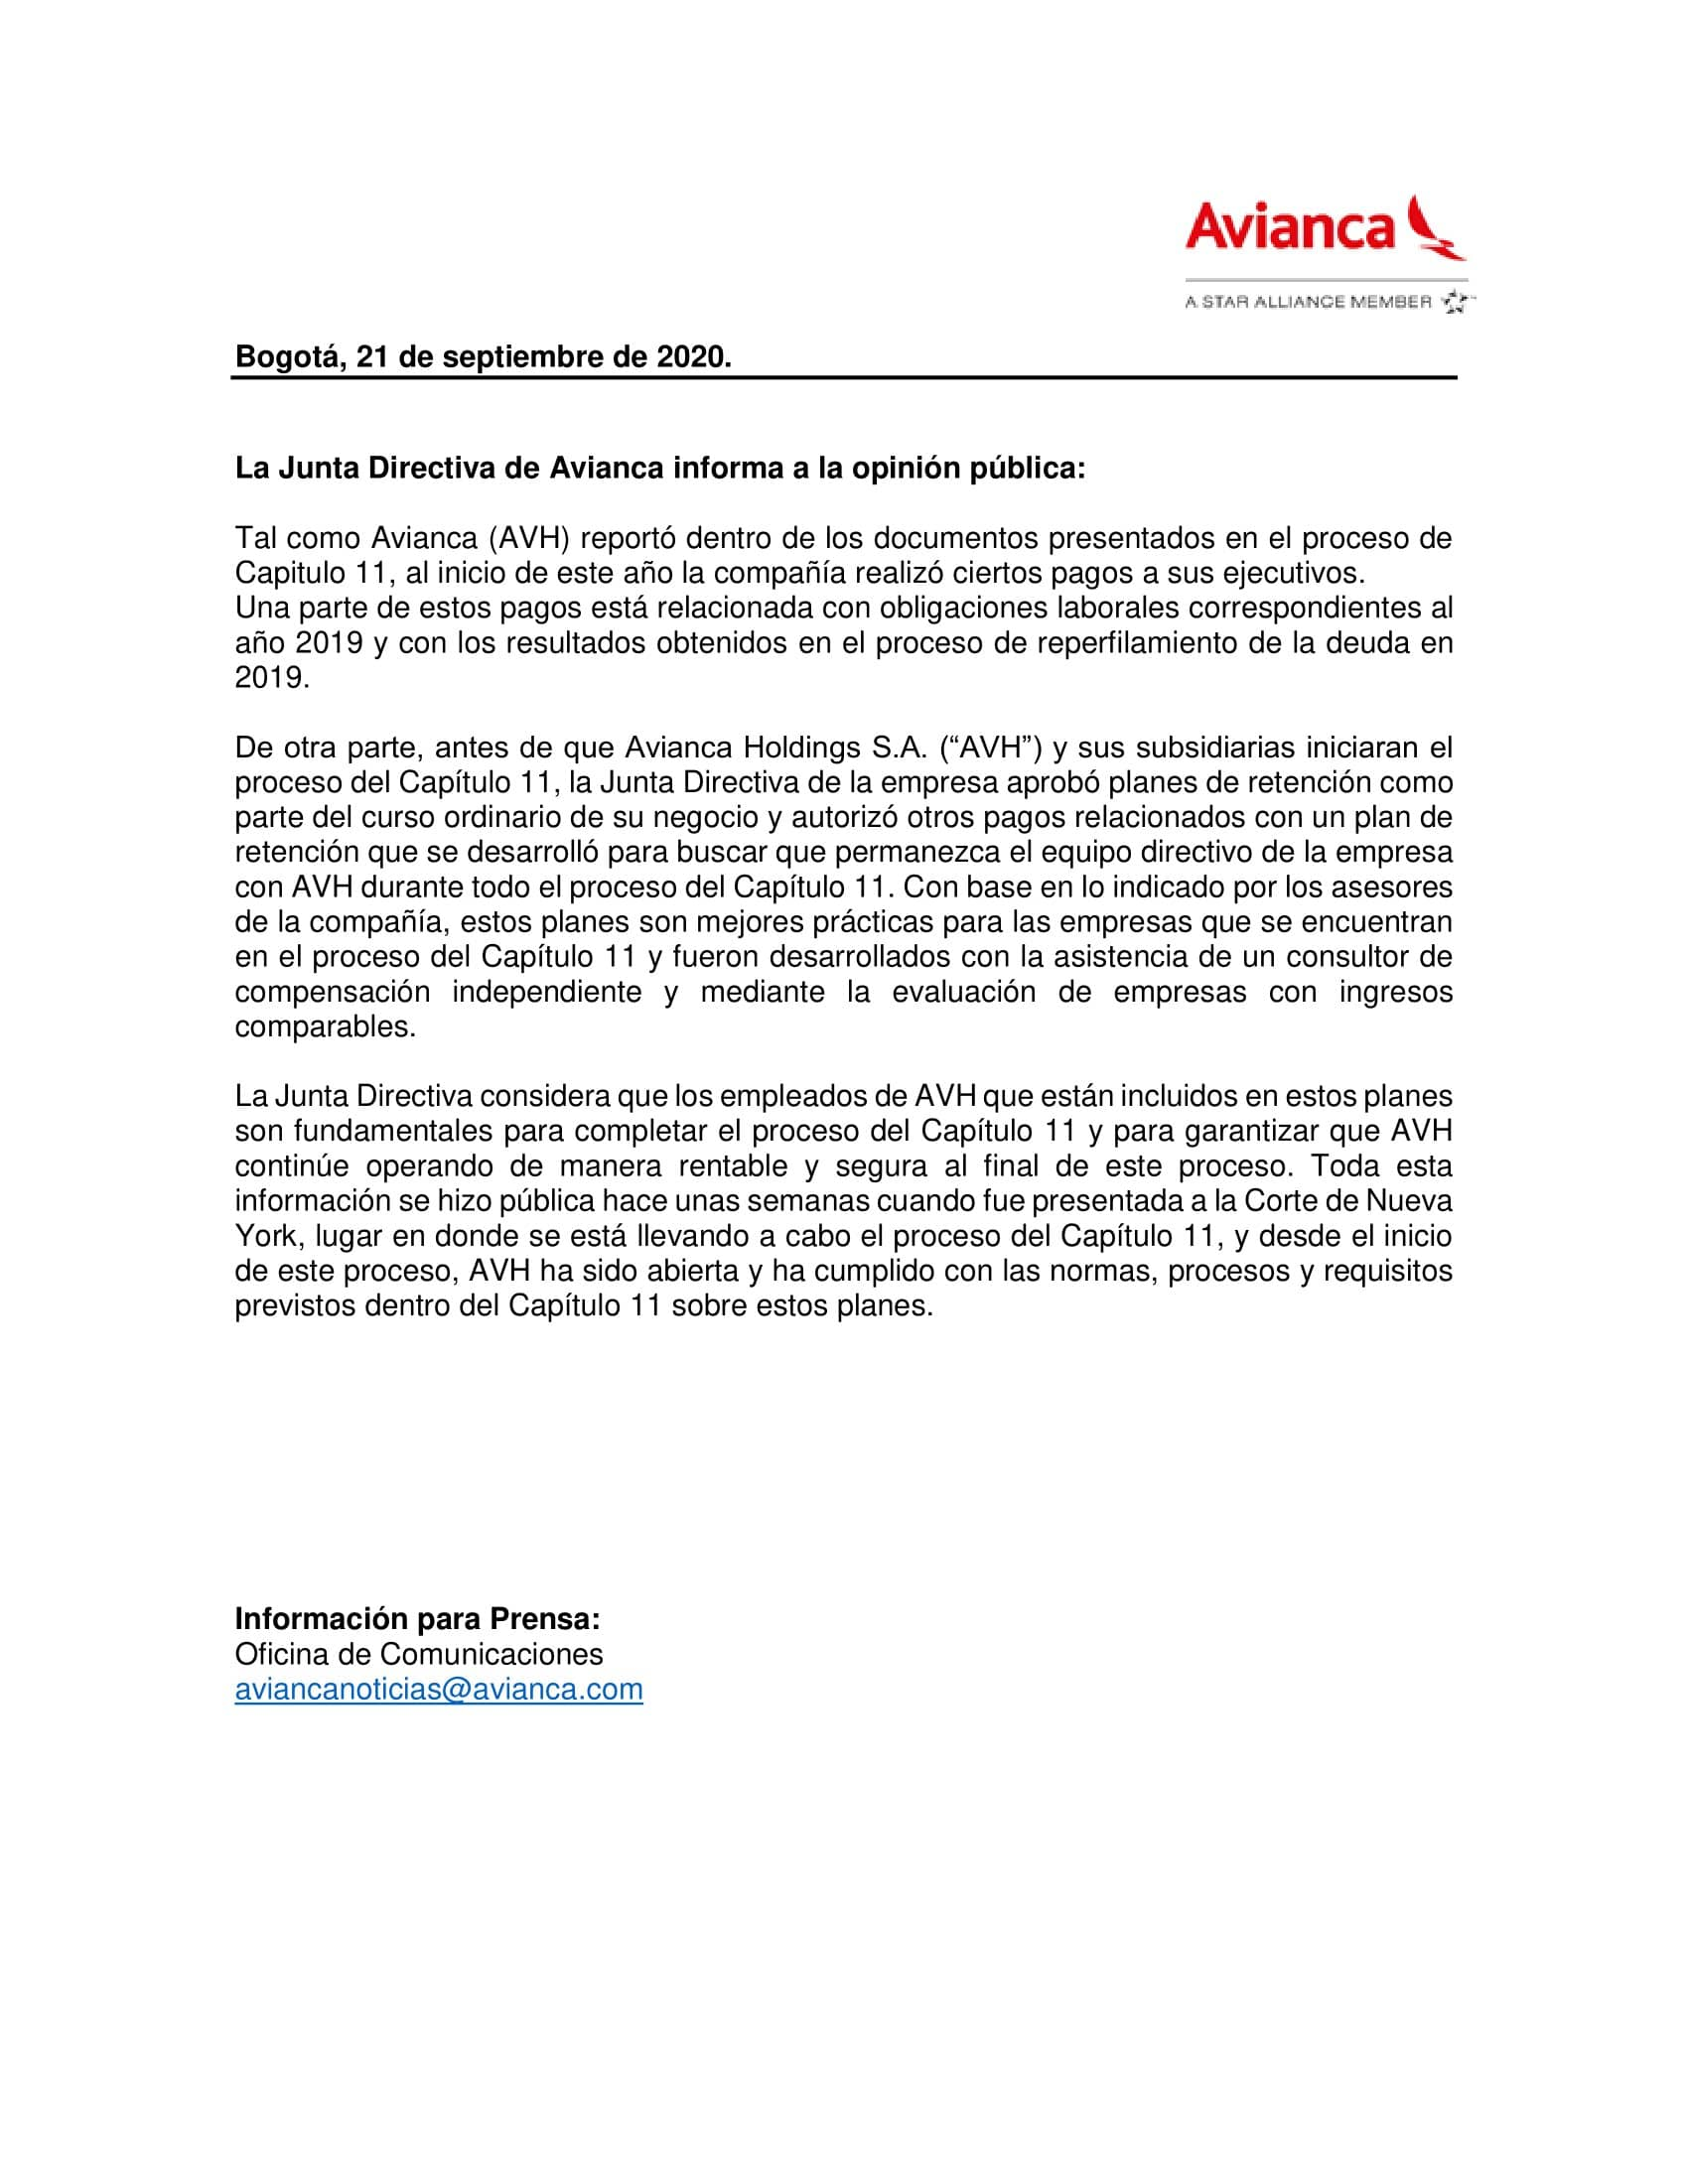 Comunicado Avianca